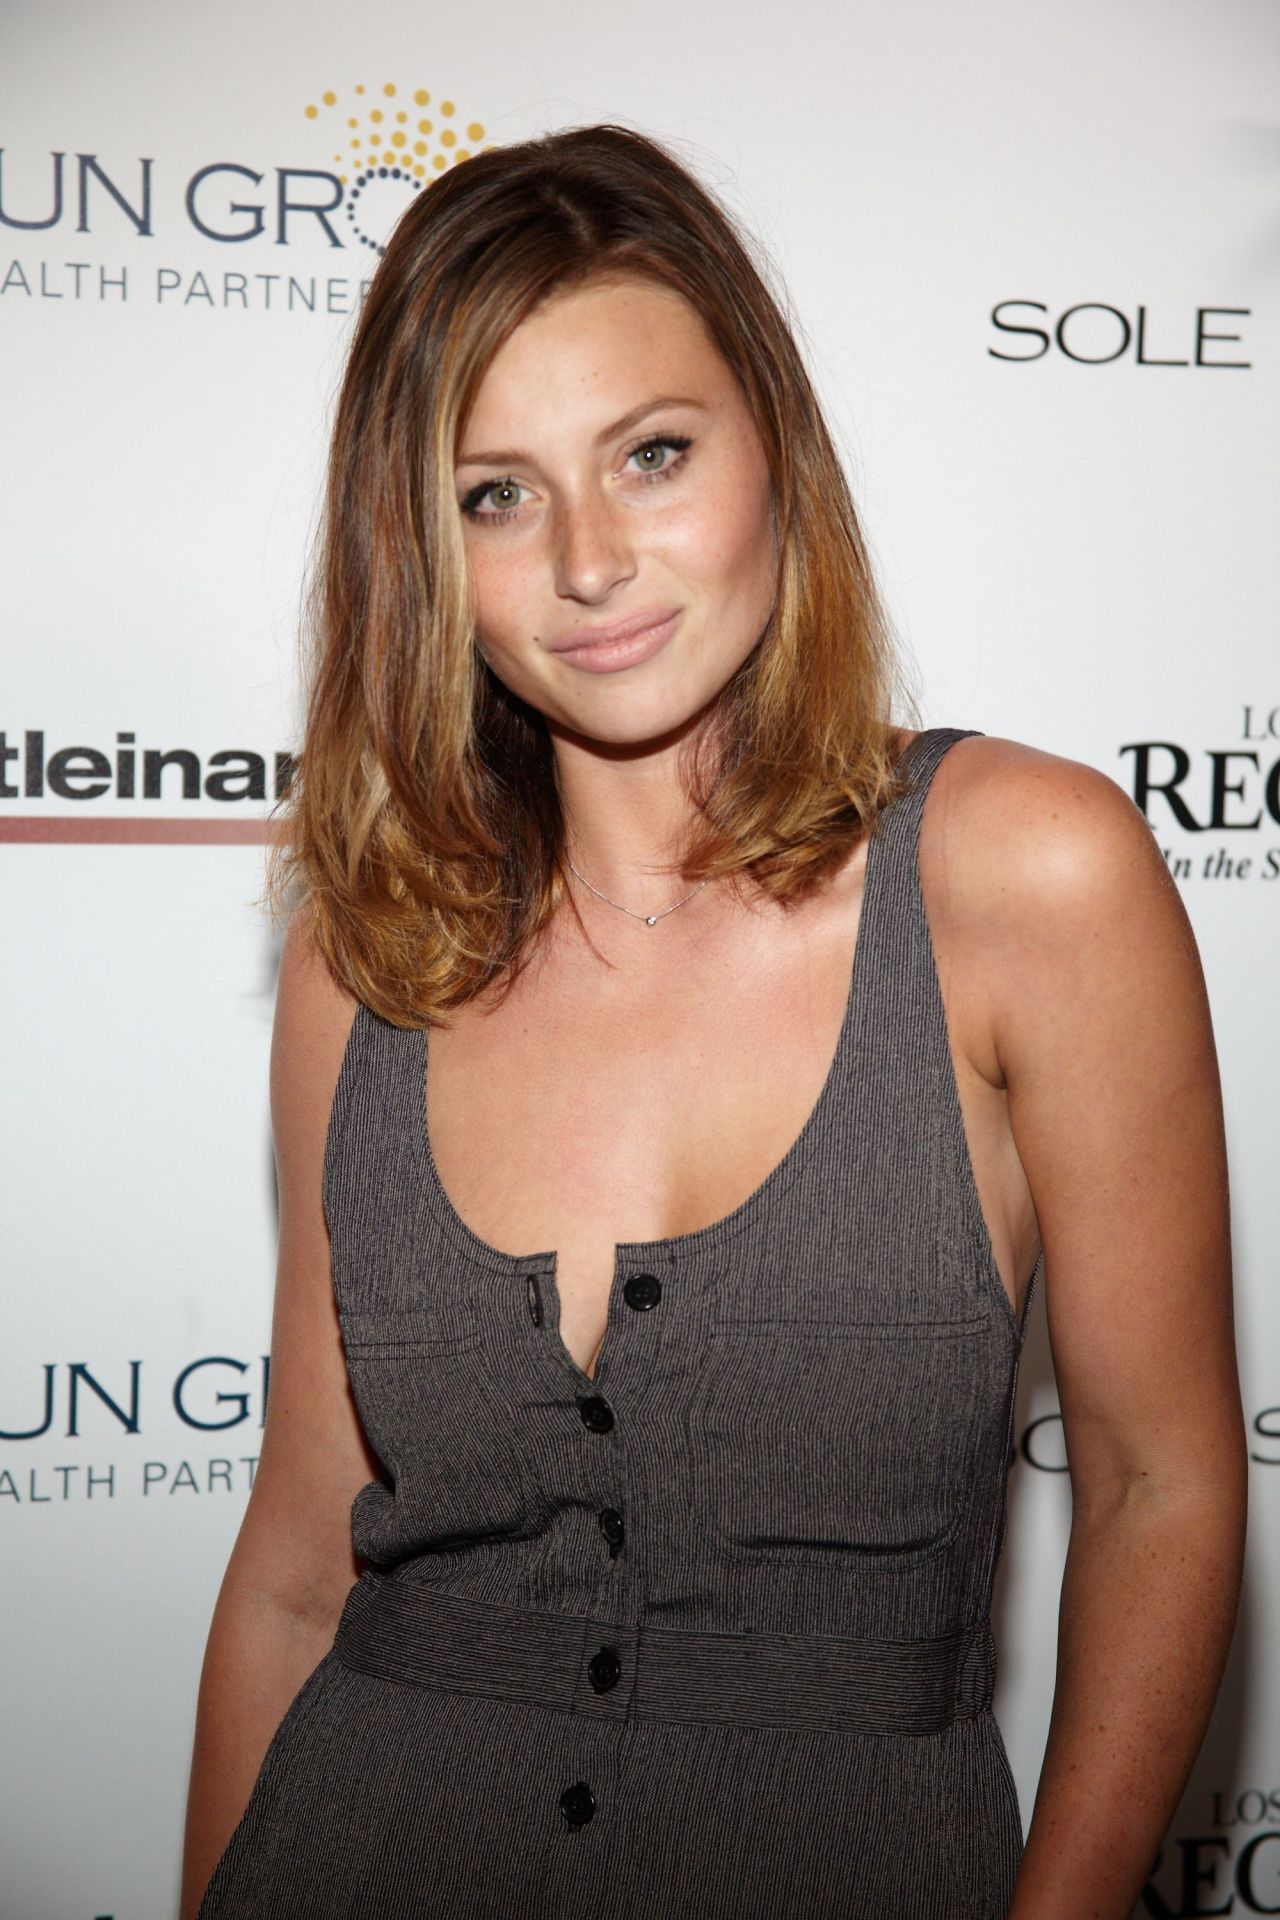 Alyson Aly Michalka - Matt Leinart Foundation